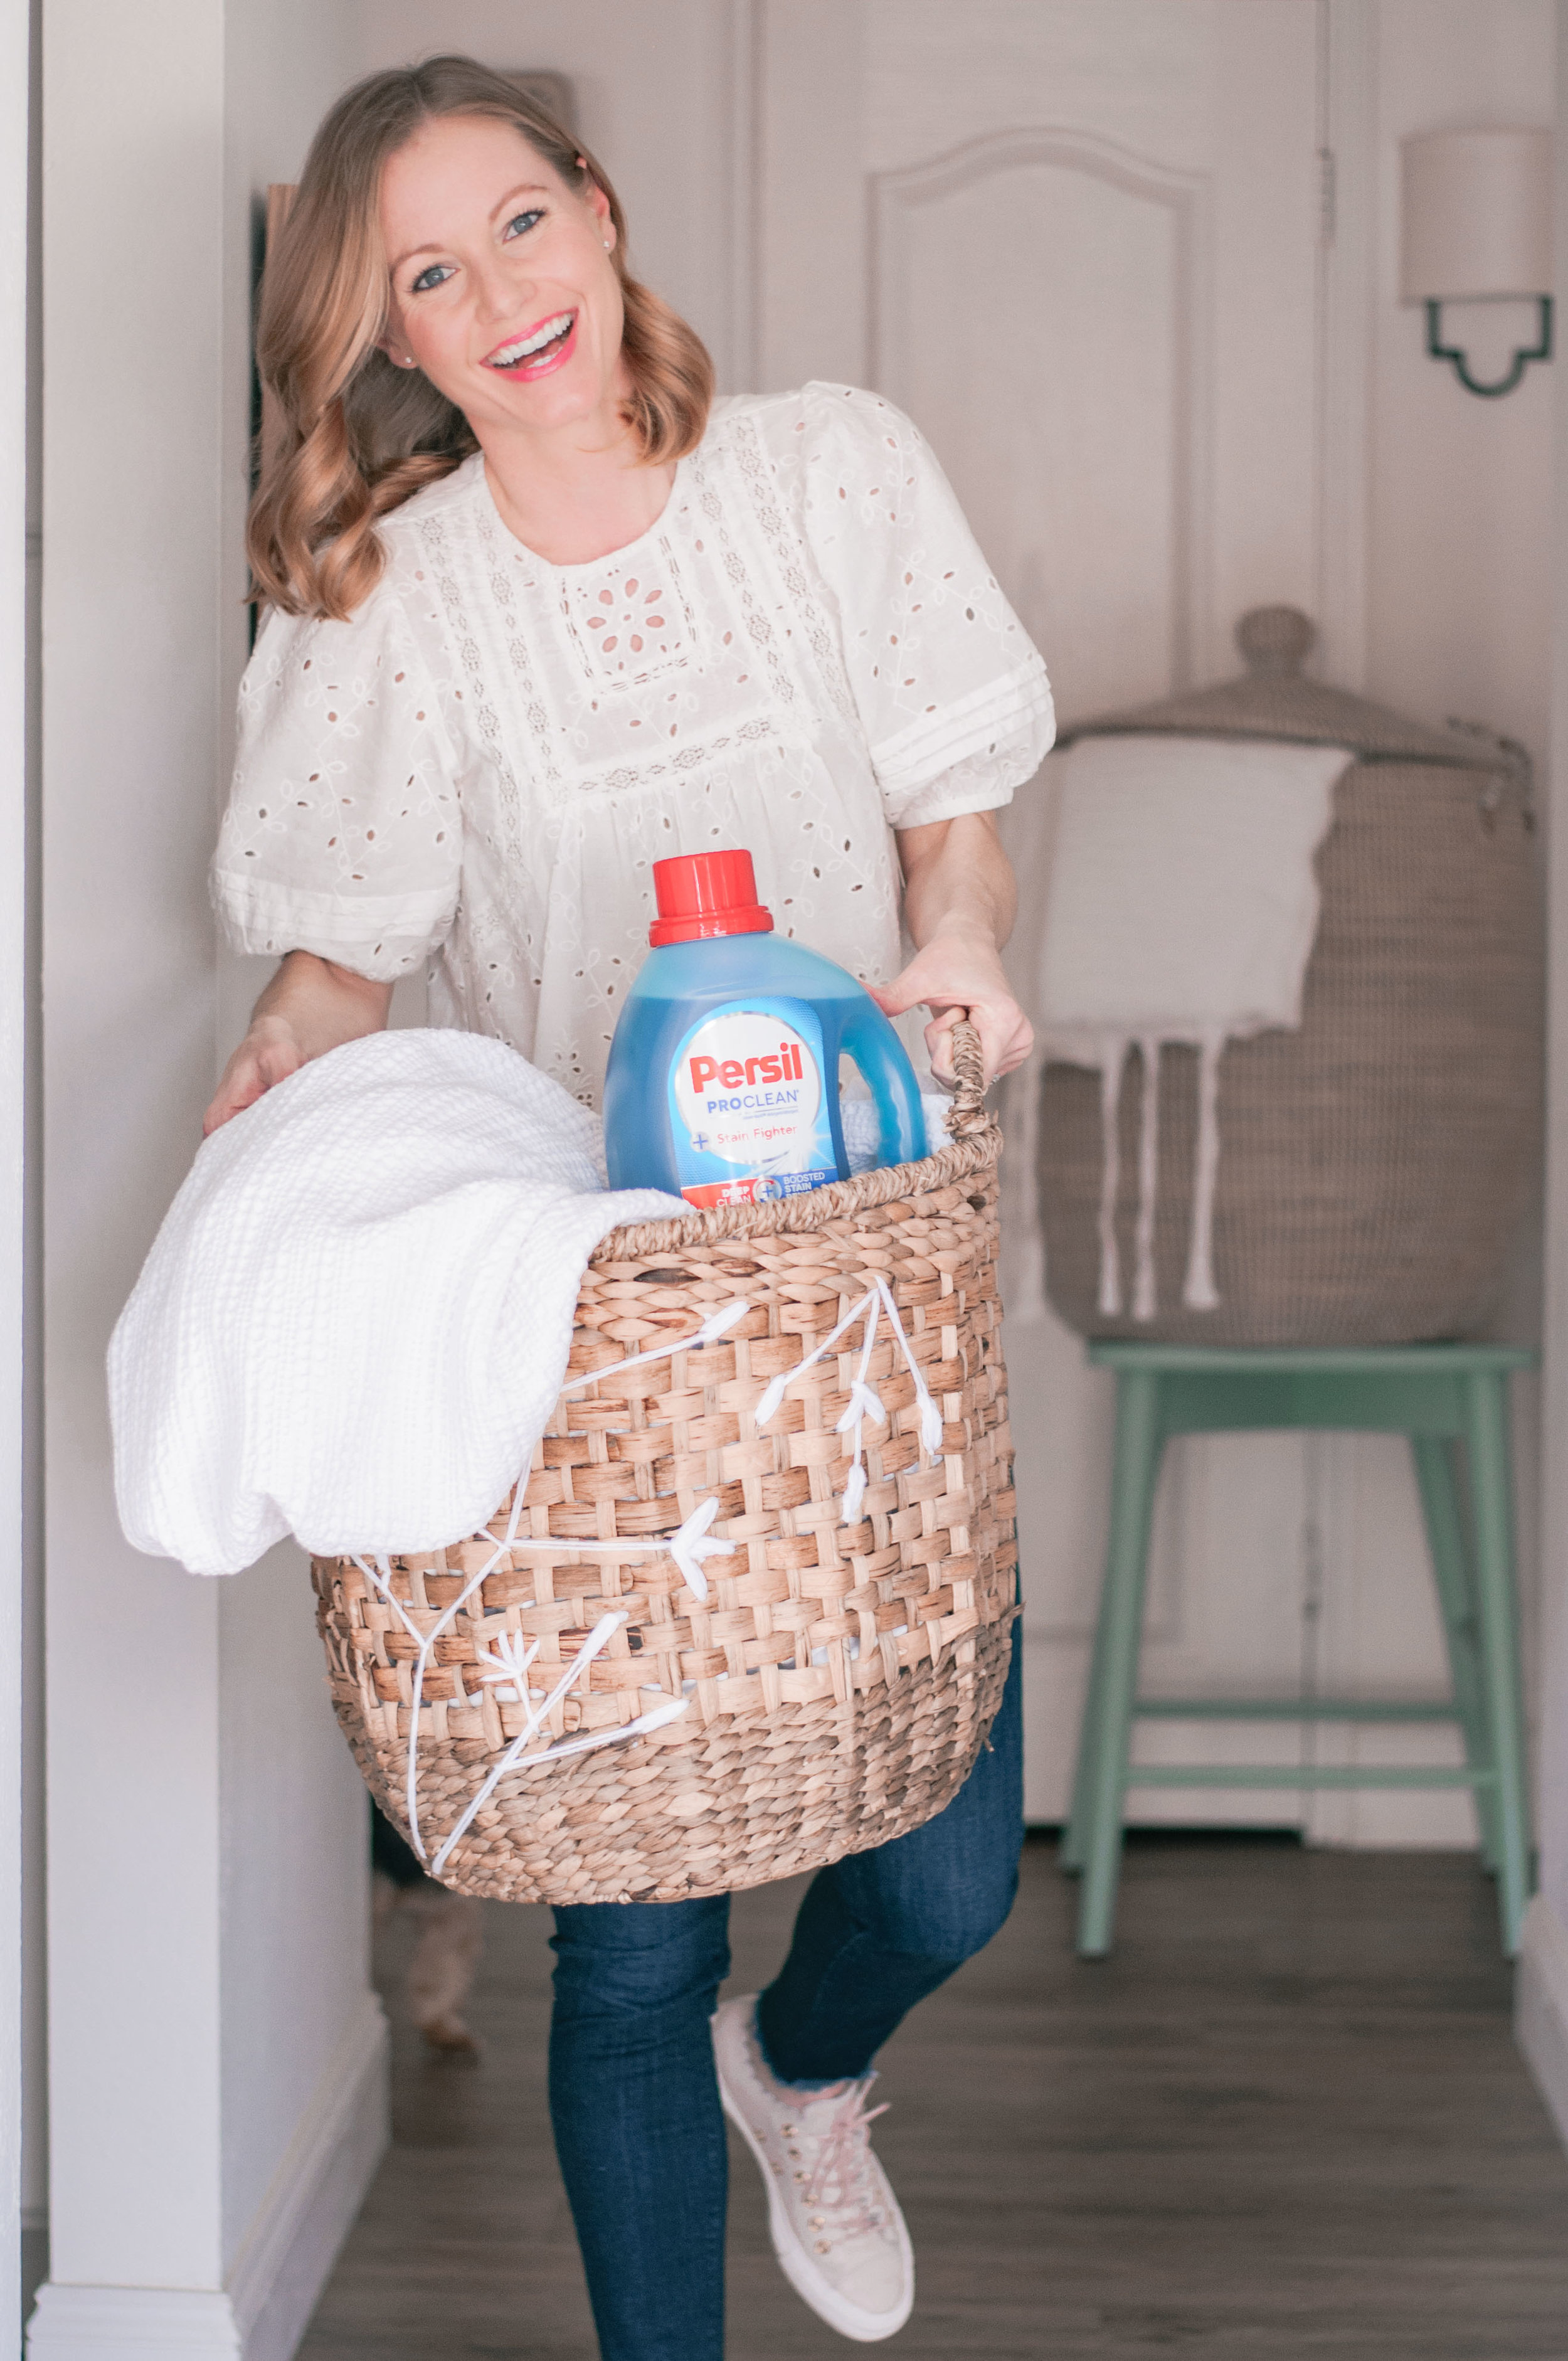 The best detergent for stains